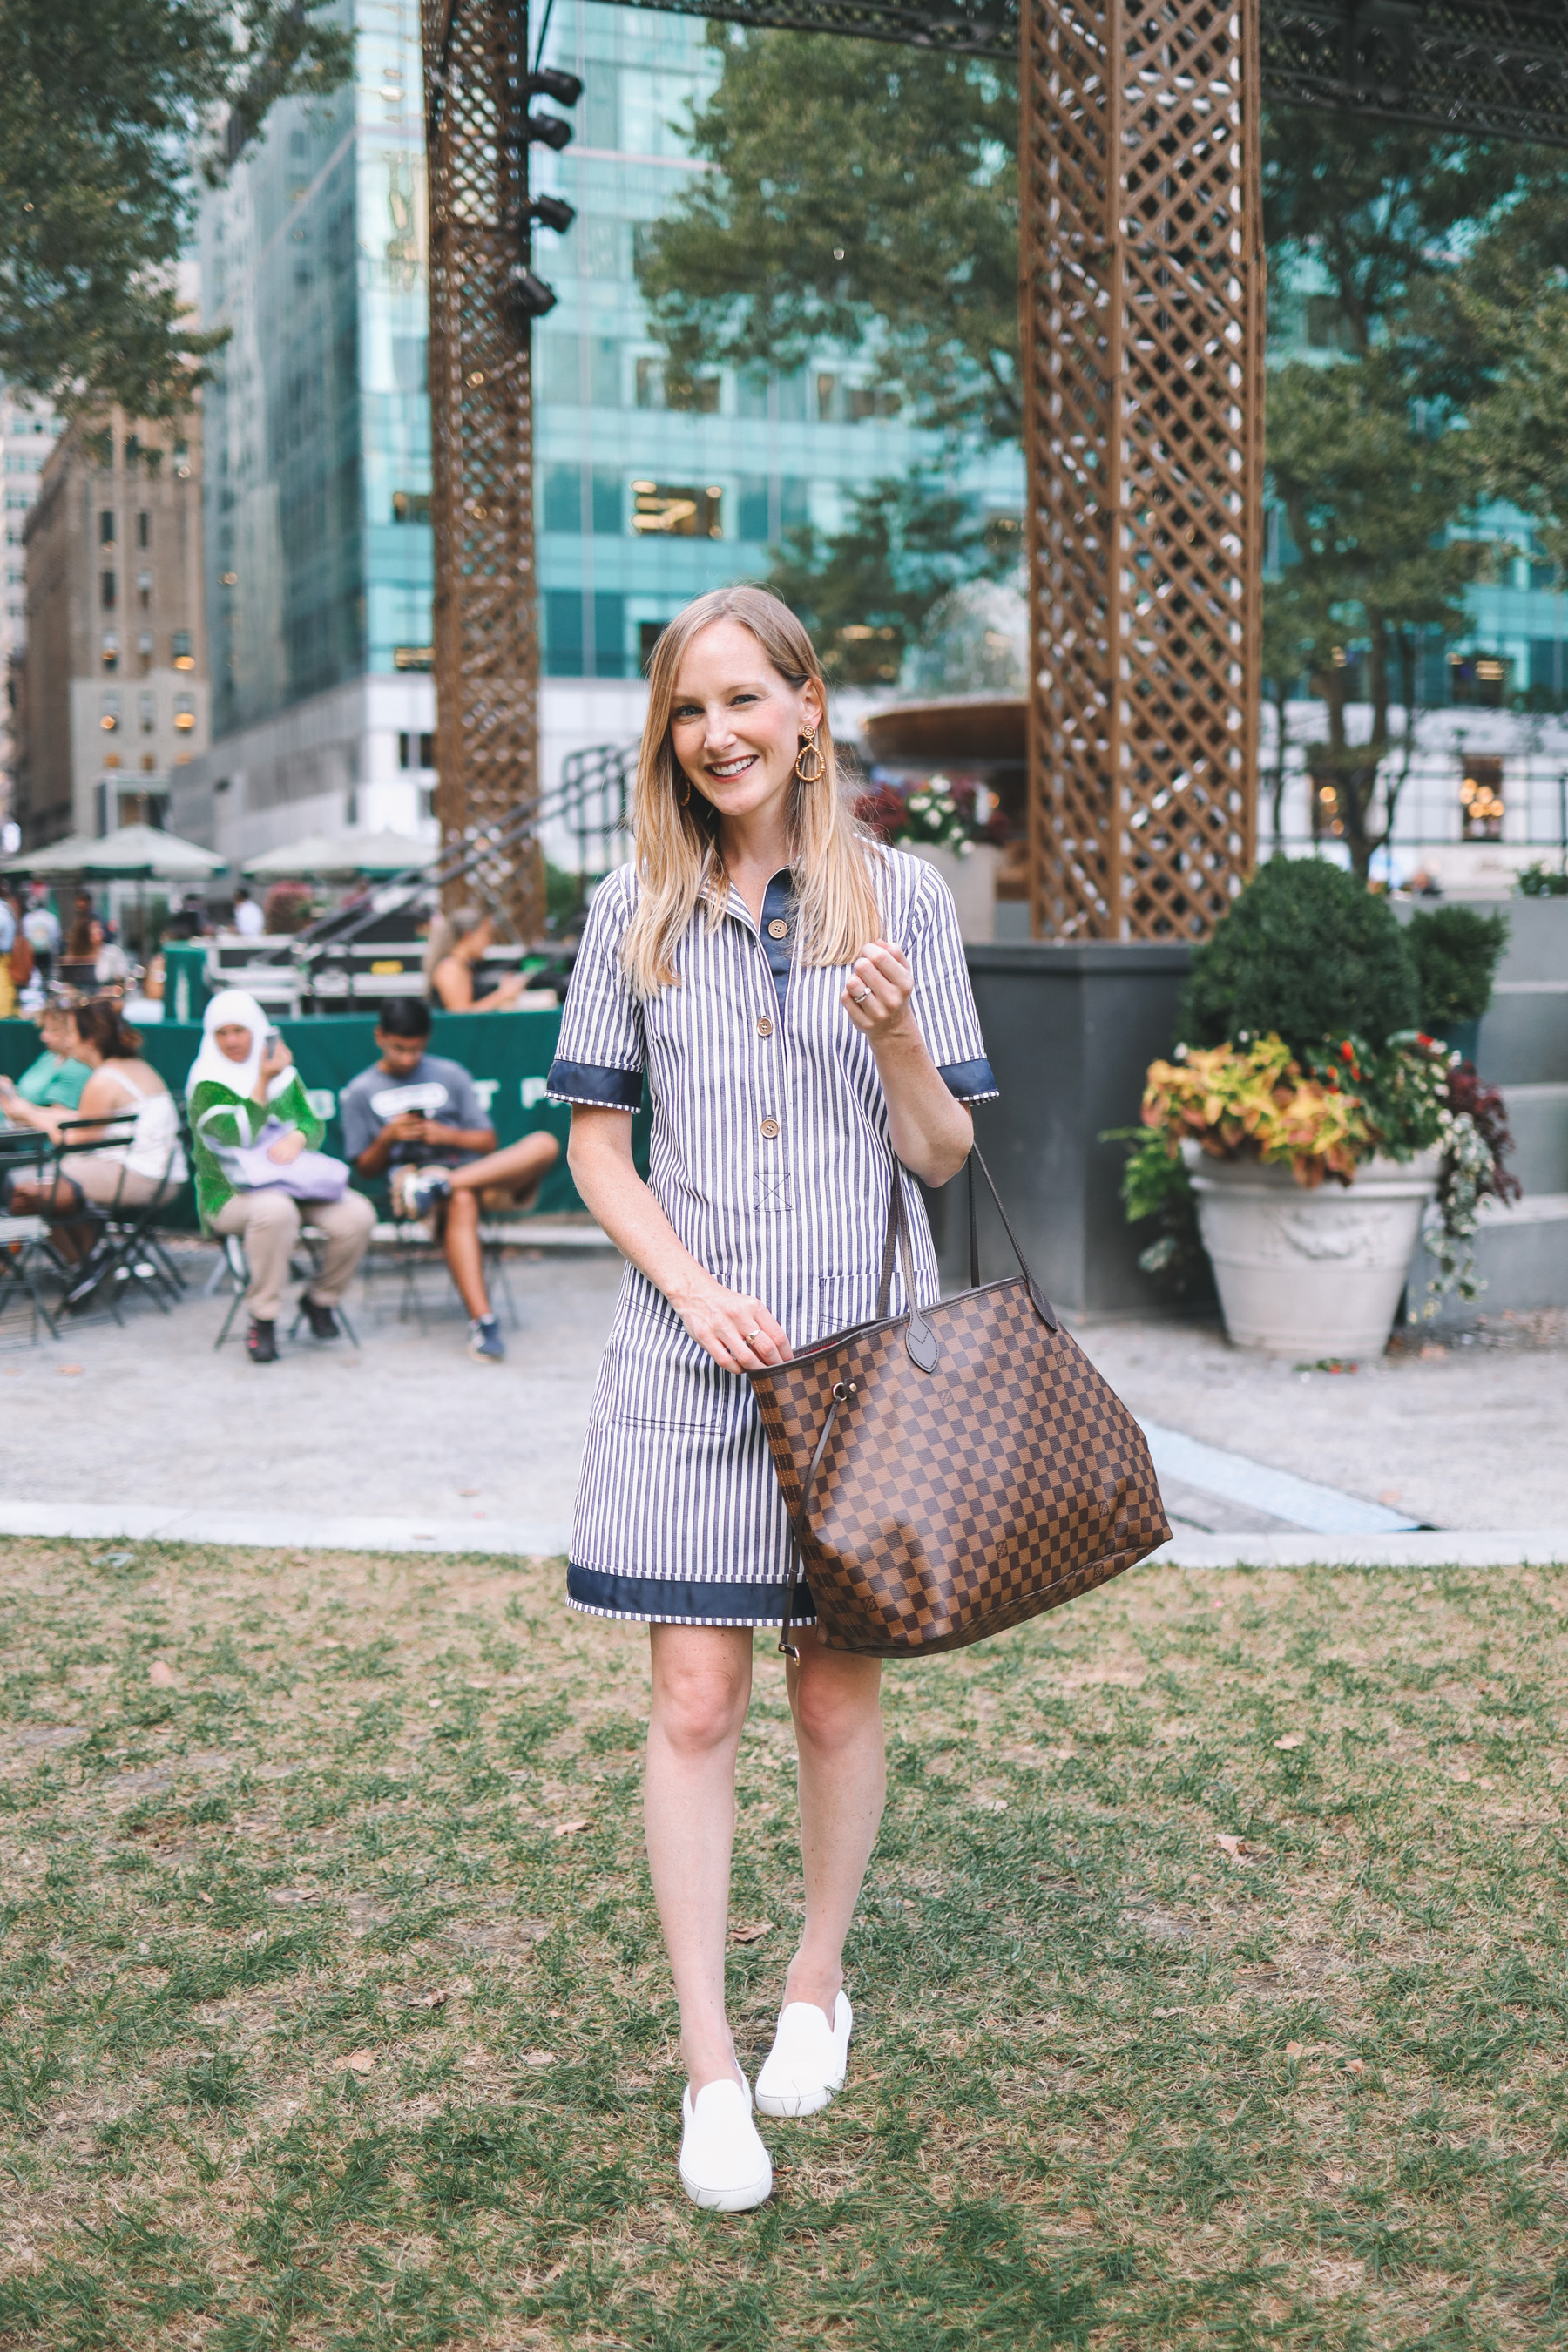 Kelly feeling happy in her easy shirtdress